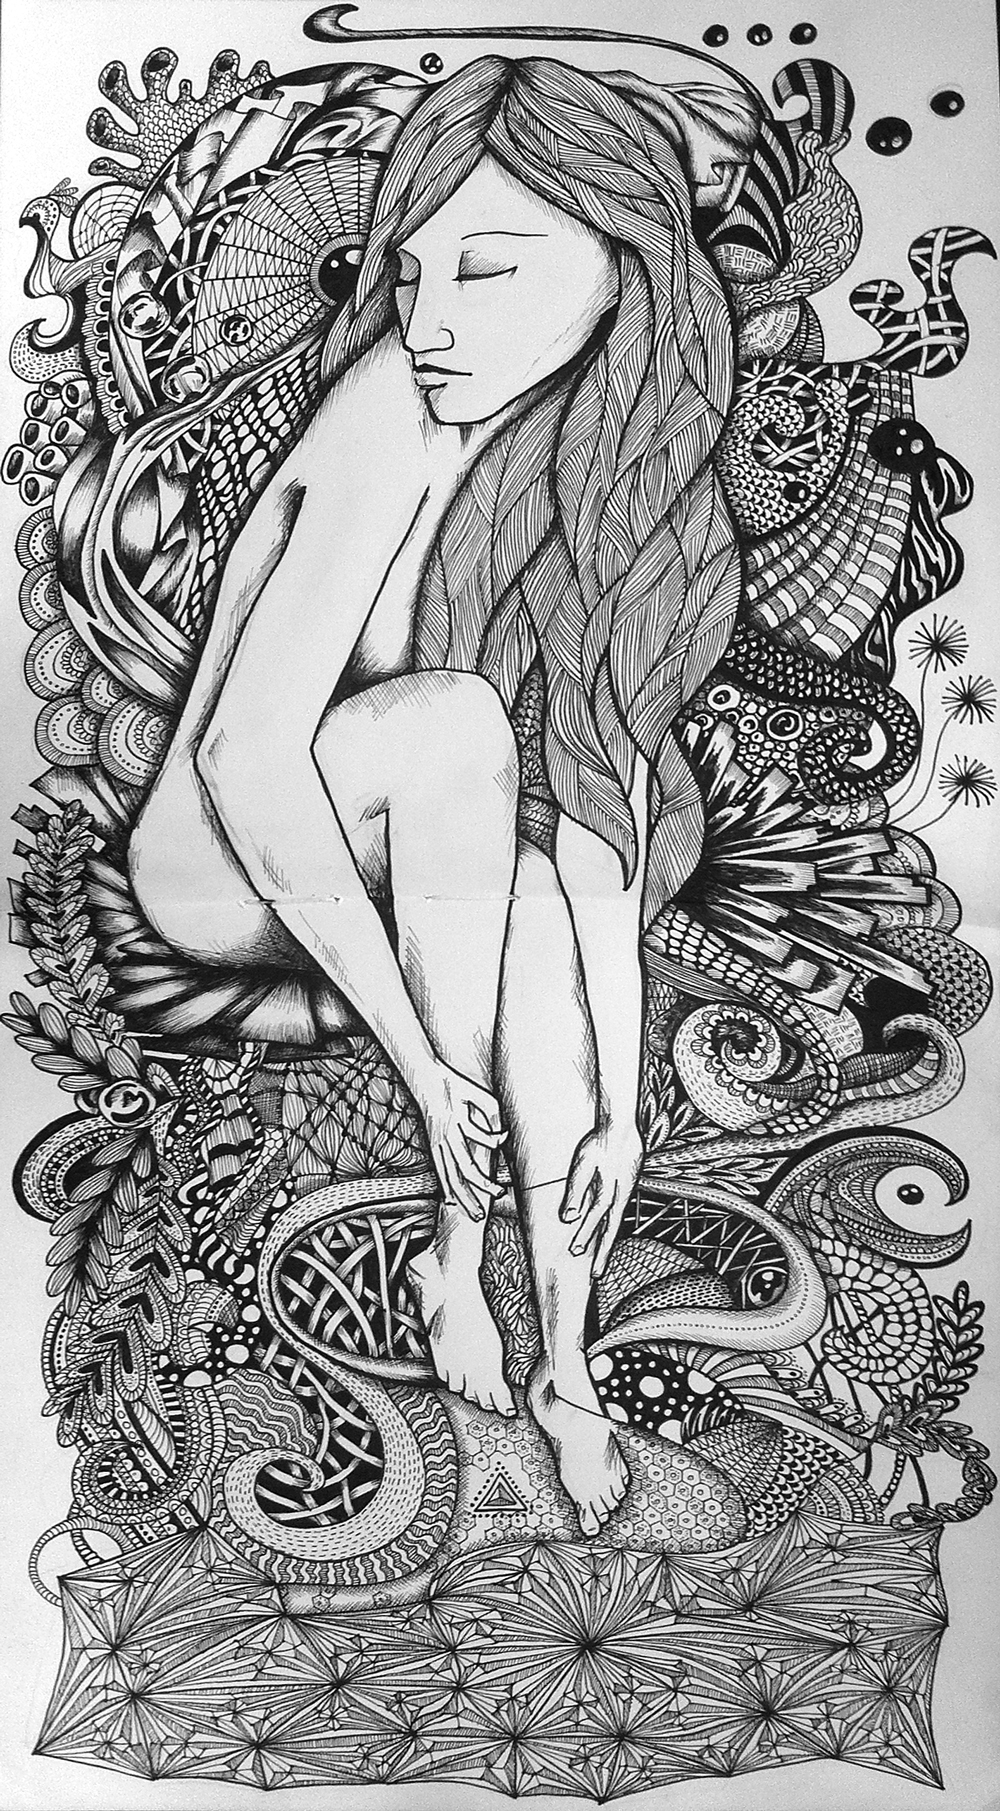 Black and white lady illustration